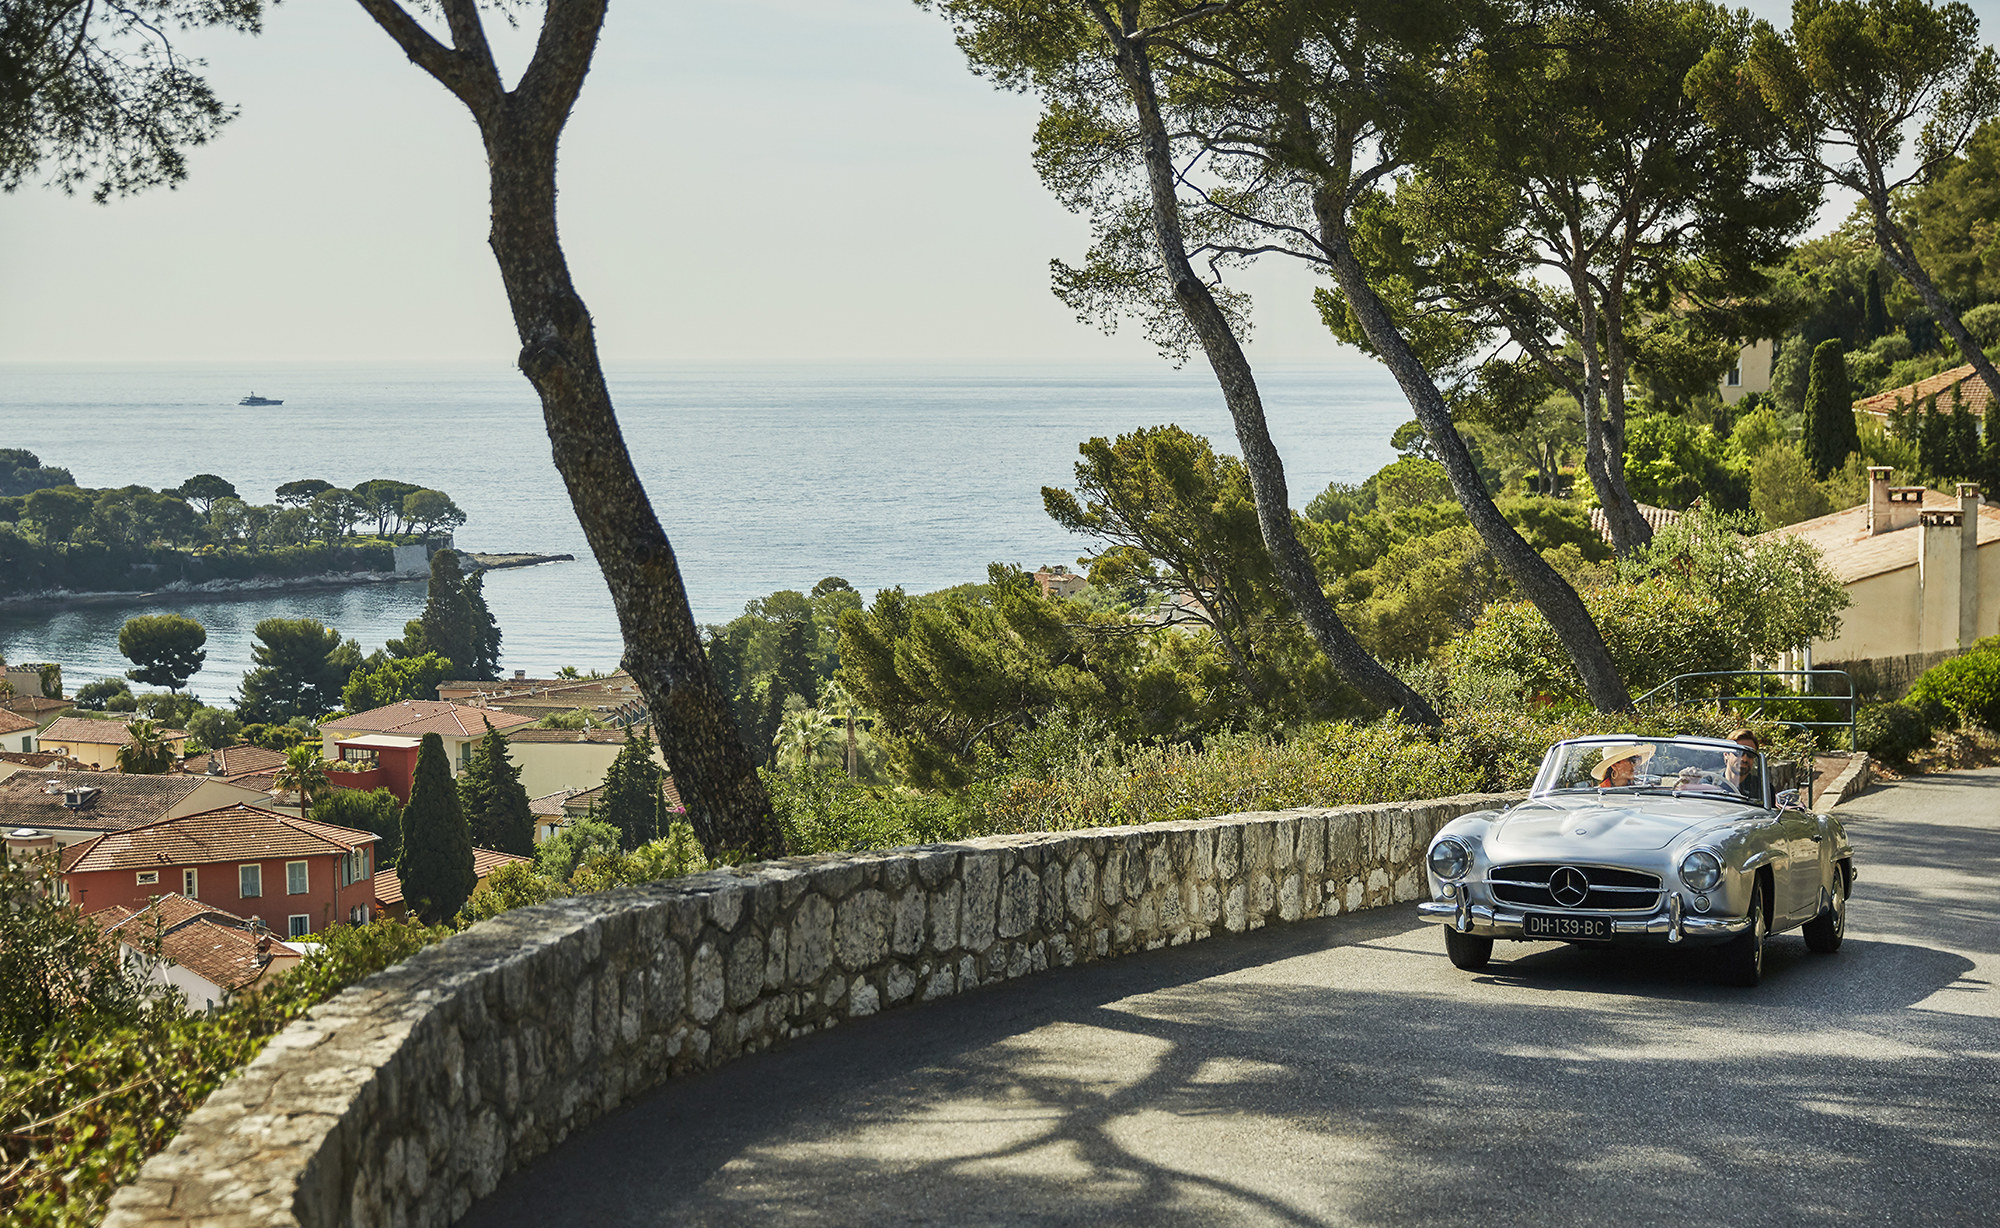 Driving through the Italian Riviera. Image: Christian Horan